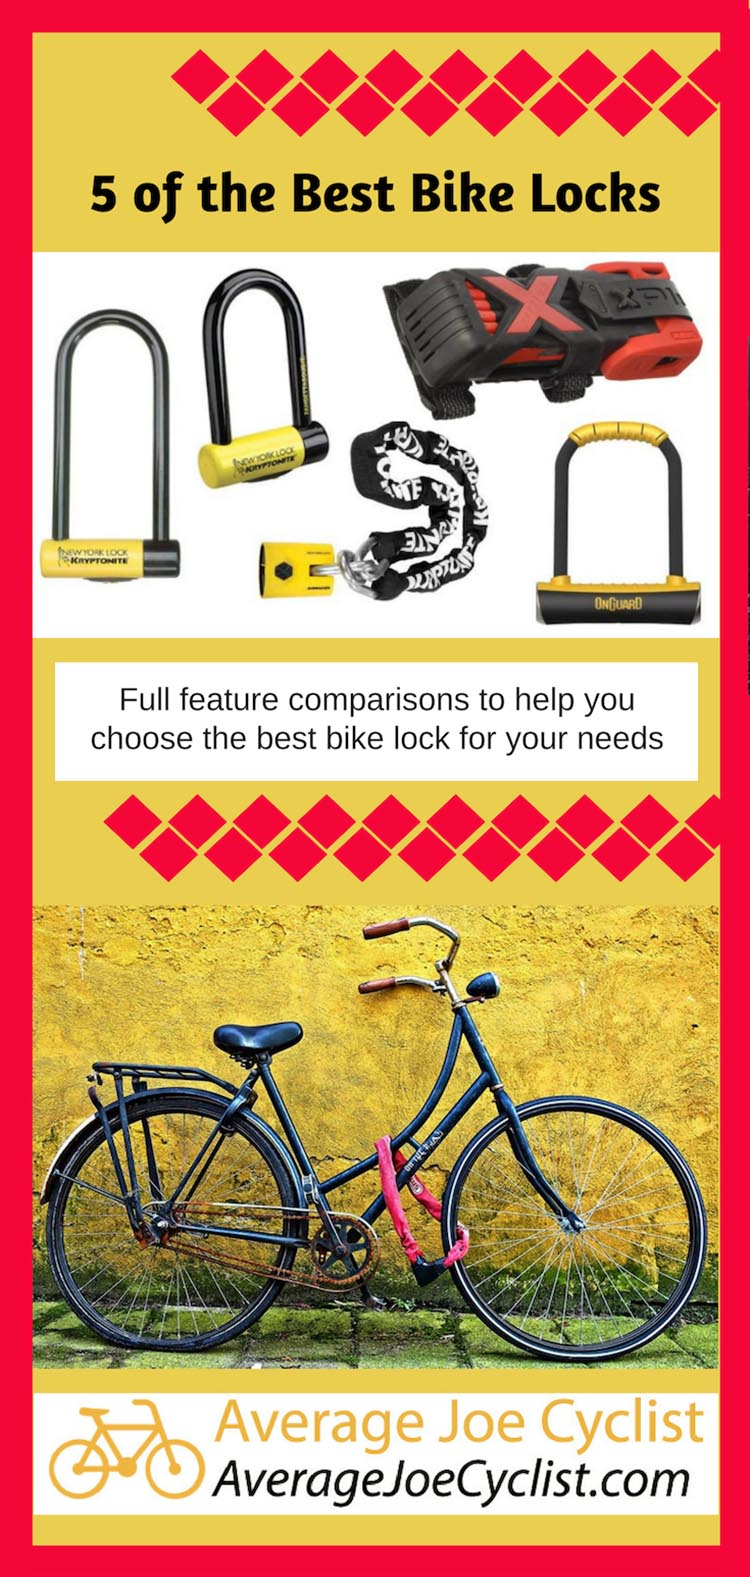 5 of the Best Bike Locks